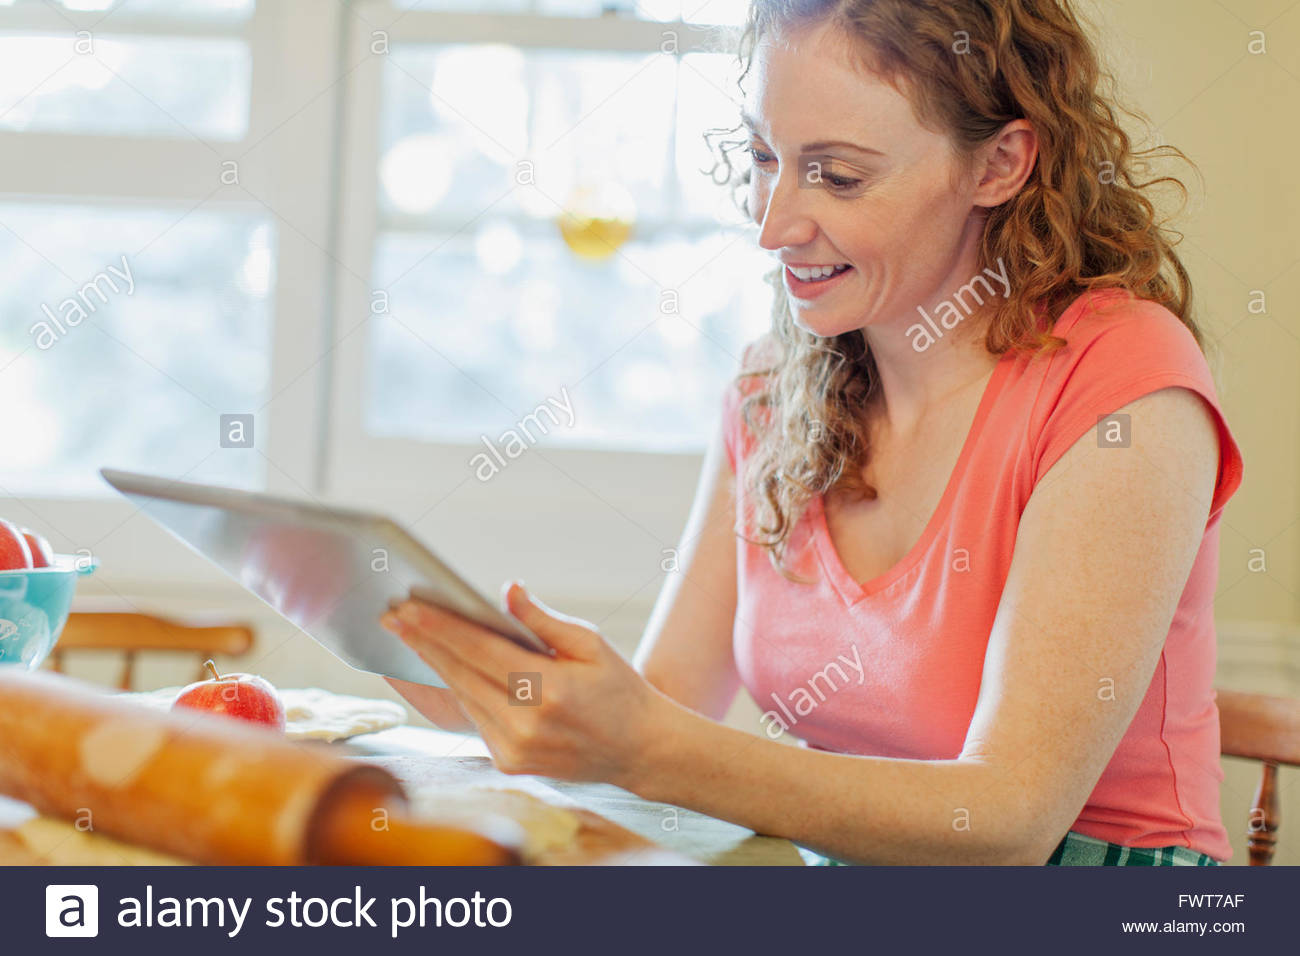 Woman using pc tablet in kitchen. - Stock Image